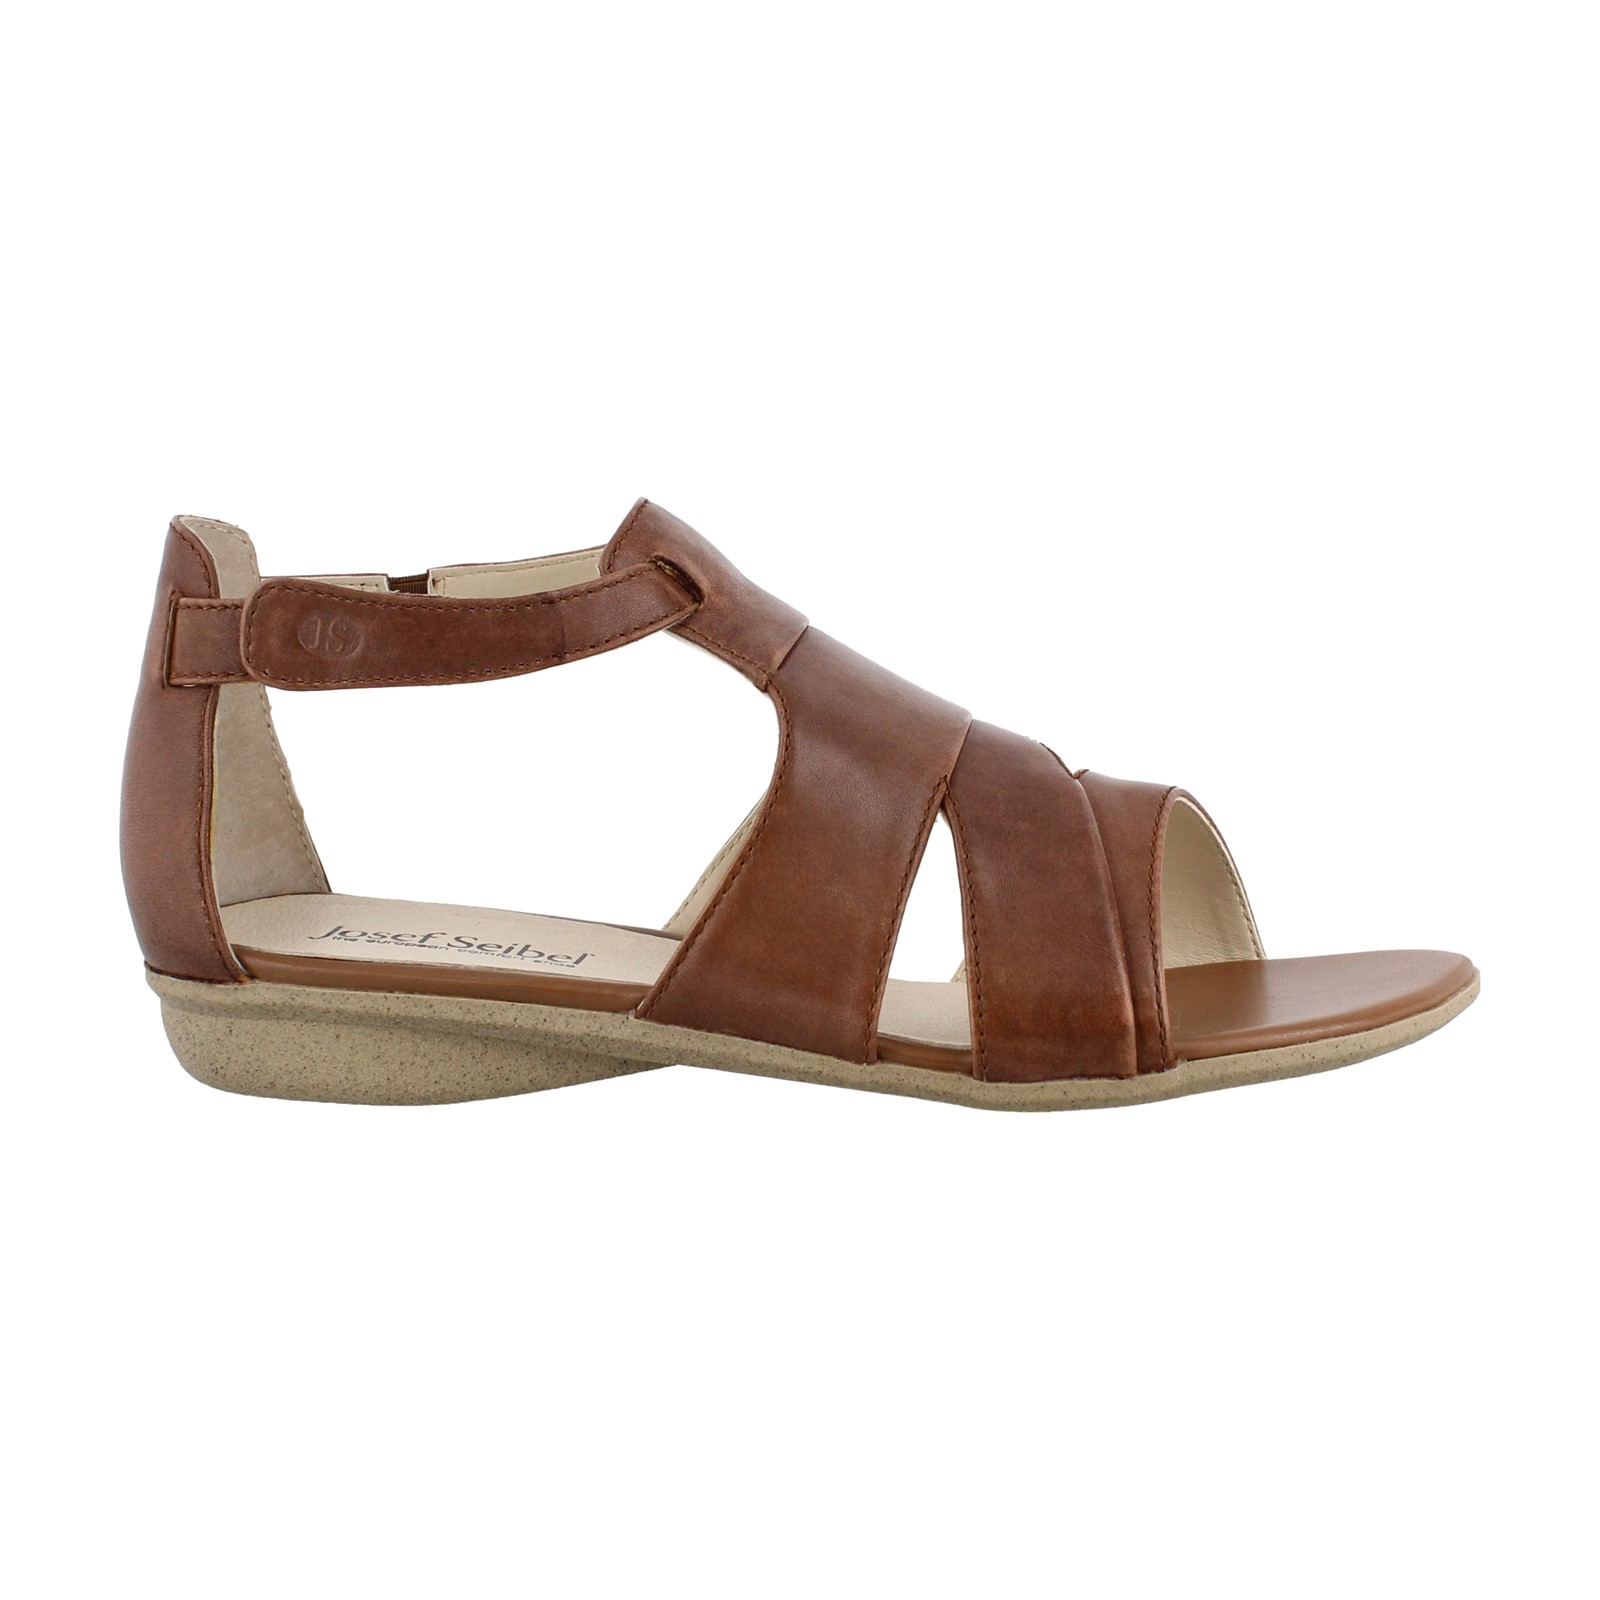 Women's Josef Seibel, Fabia 03 Sandals